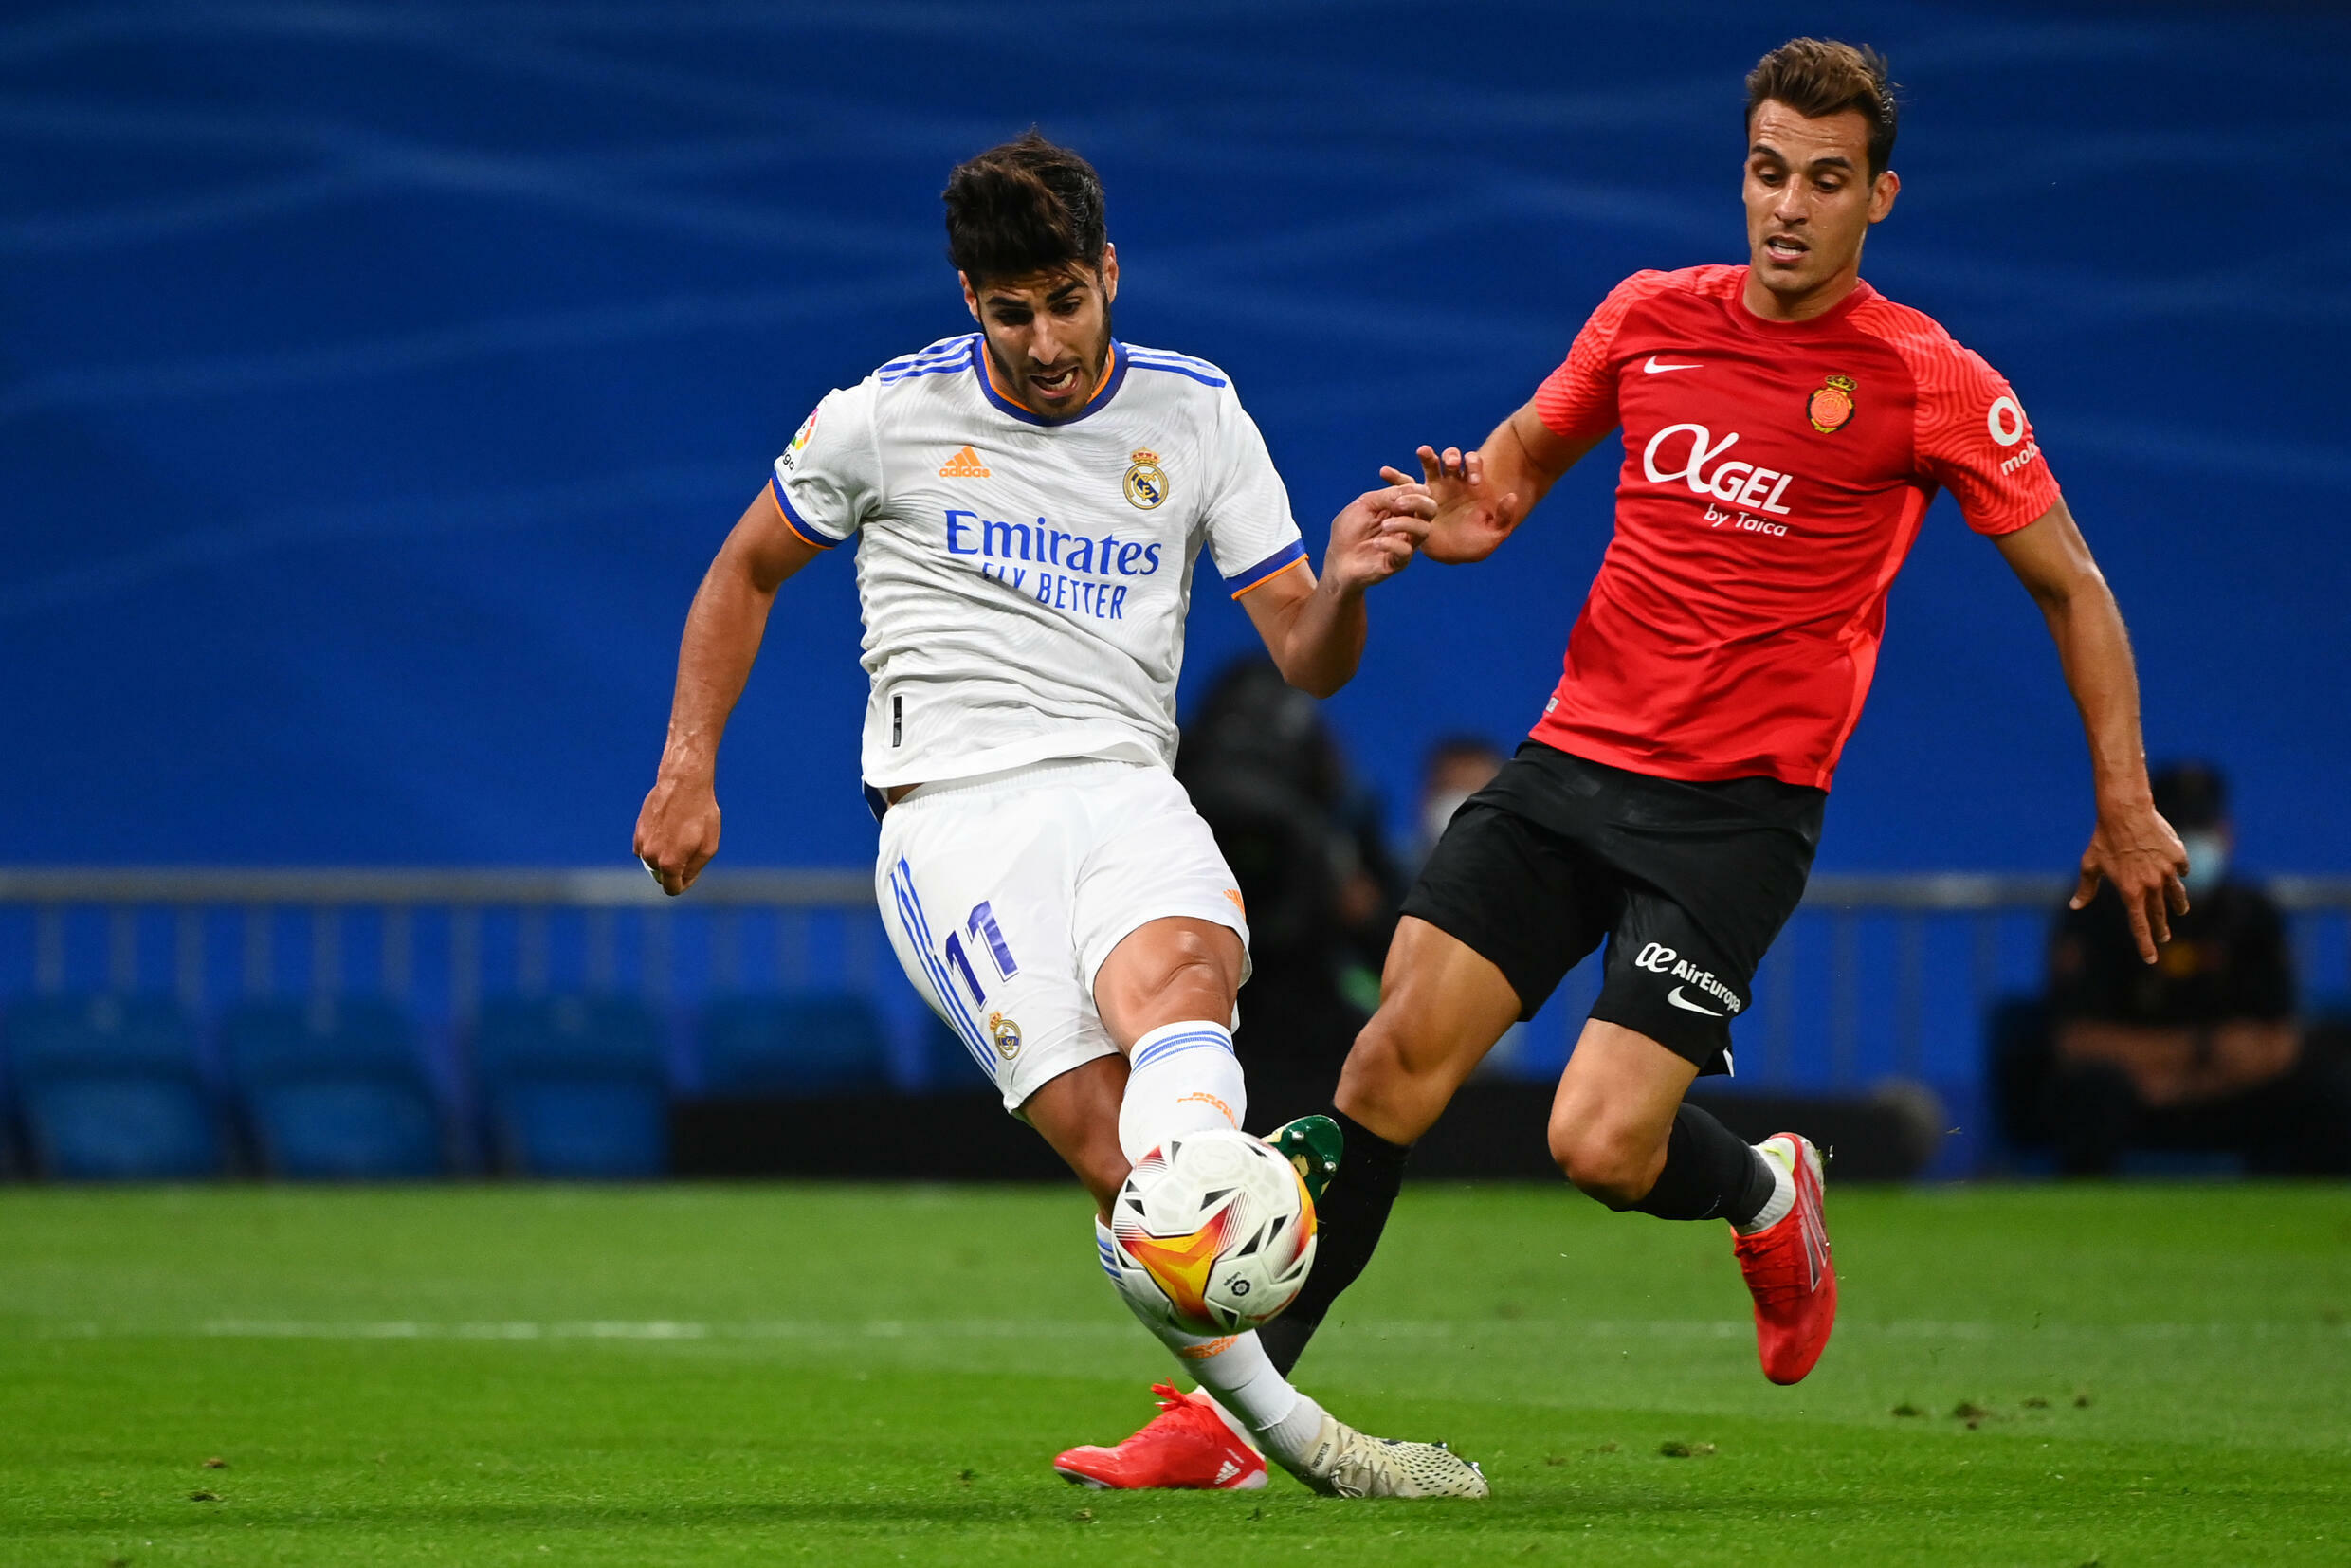 Asensio bags hat-trick as Real Madrid hit Mallorca for six - France 24